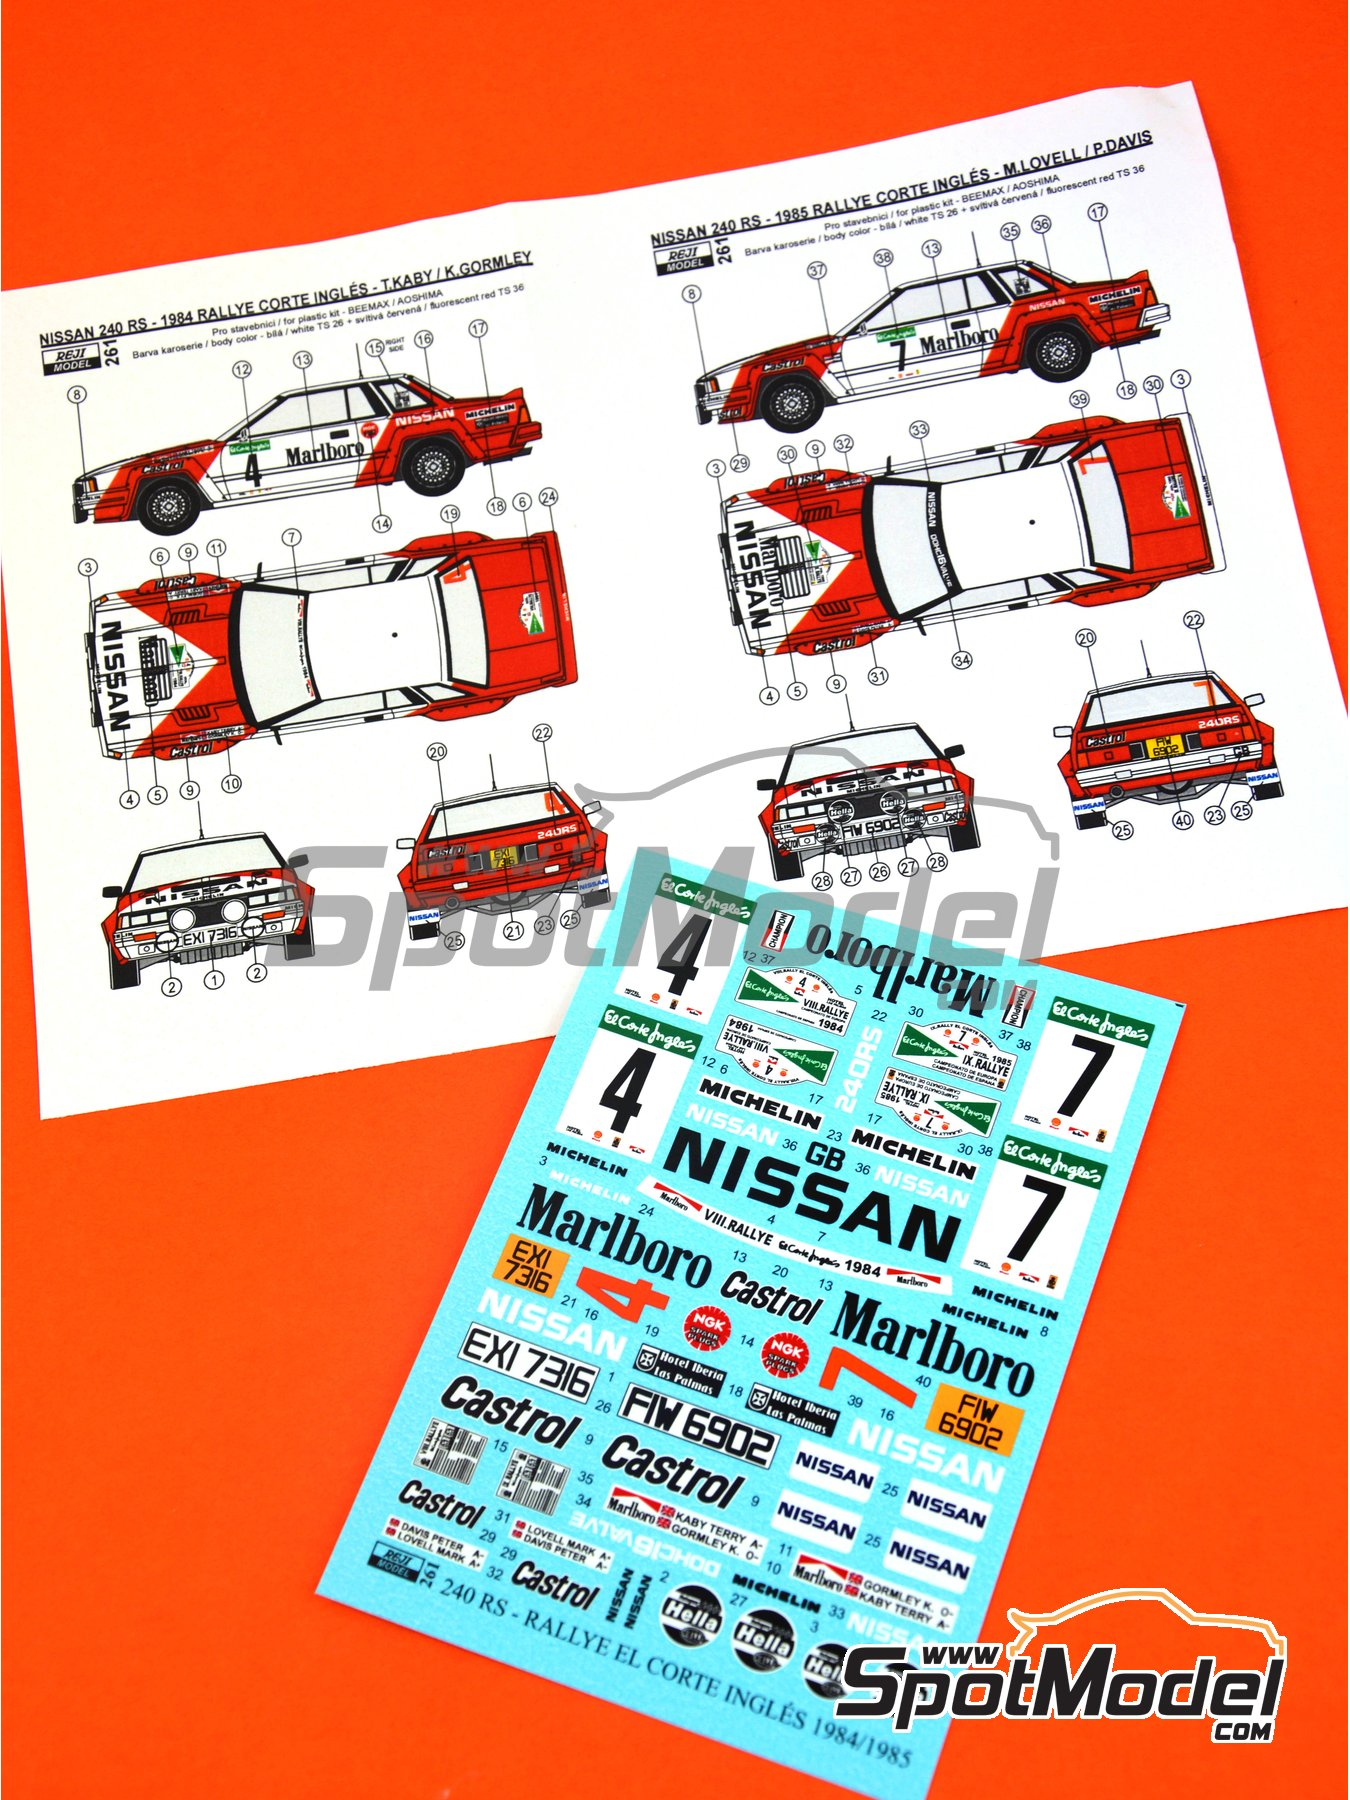 Nissan 240RS - Rally El Corte Ingles 1984, 1985 | Decoración en escala 1/24 fabricado por Reji Model (ref. REJI-261) image